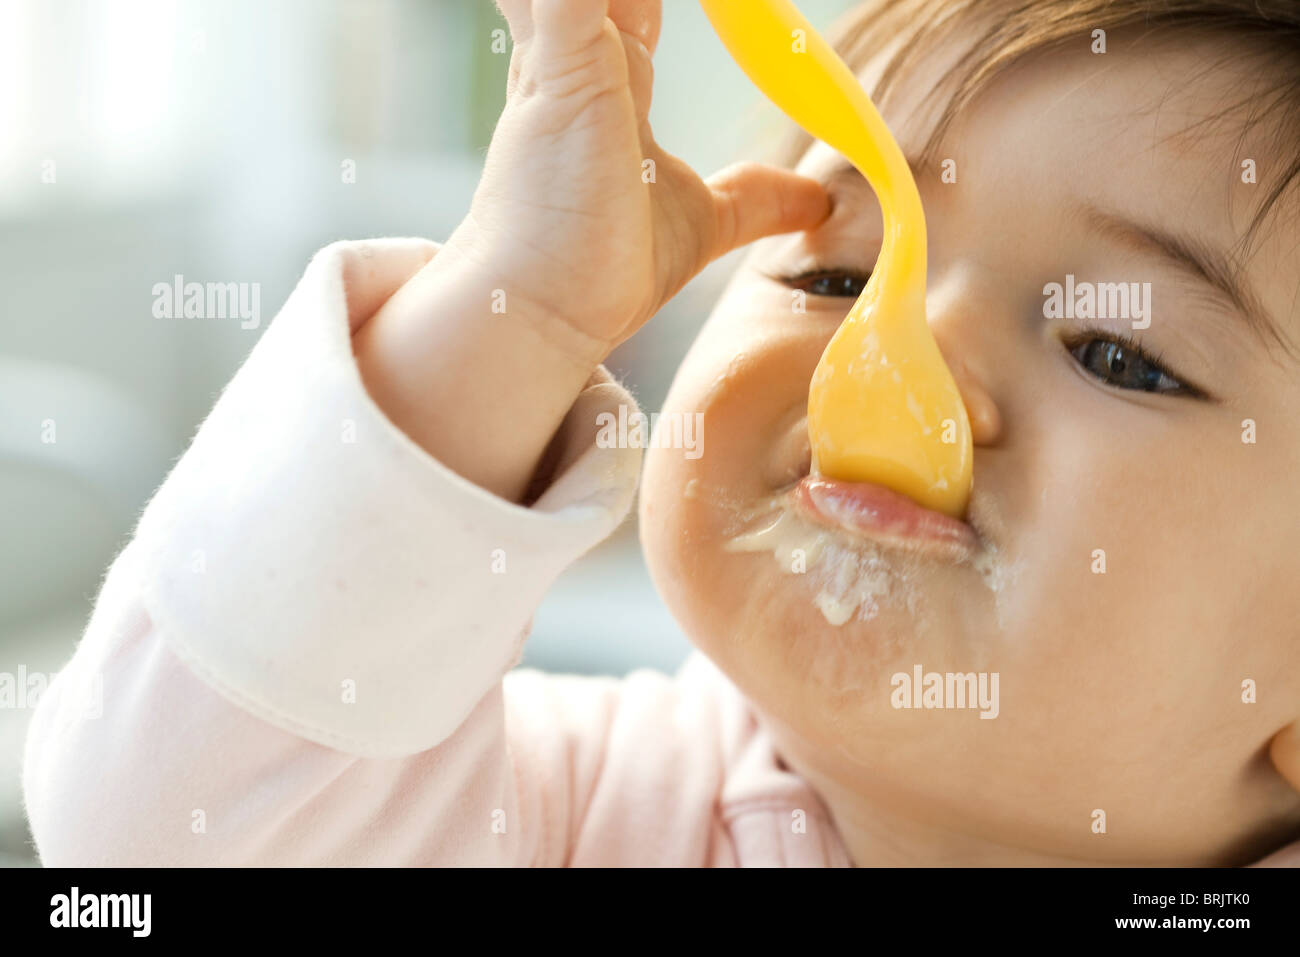 Infant eating with spoon - Stock Image